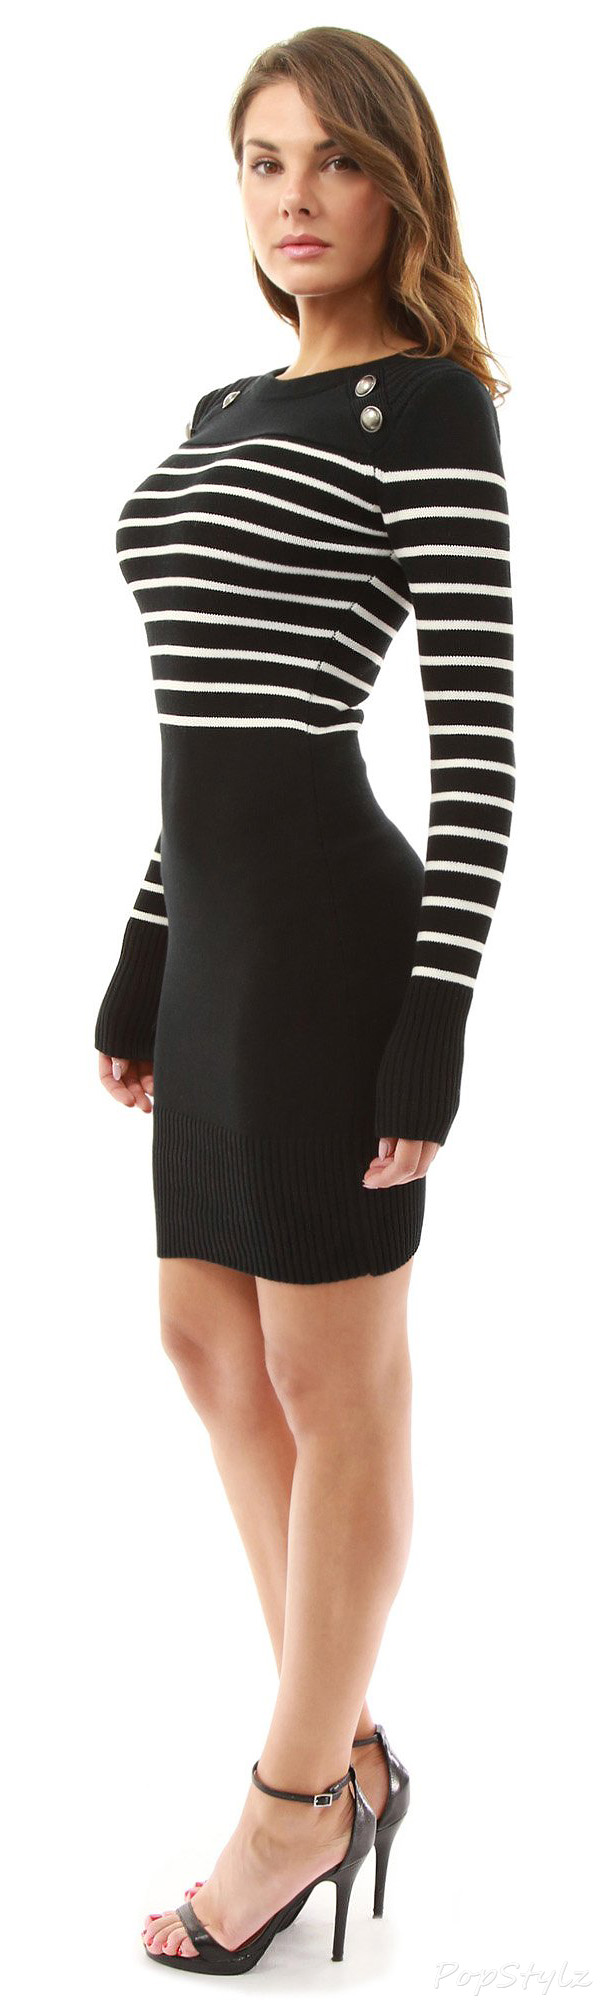 PattyBoutik Military Striped Crew Neck Sweater Dress